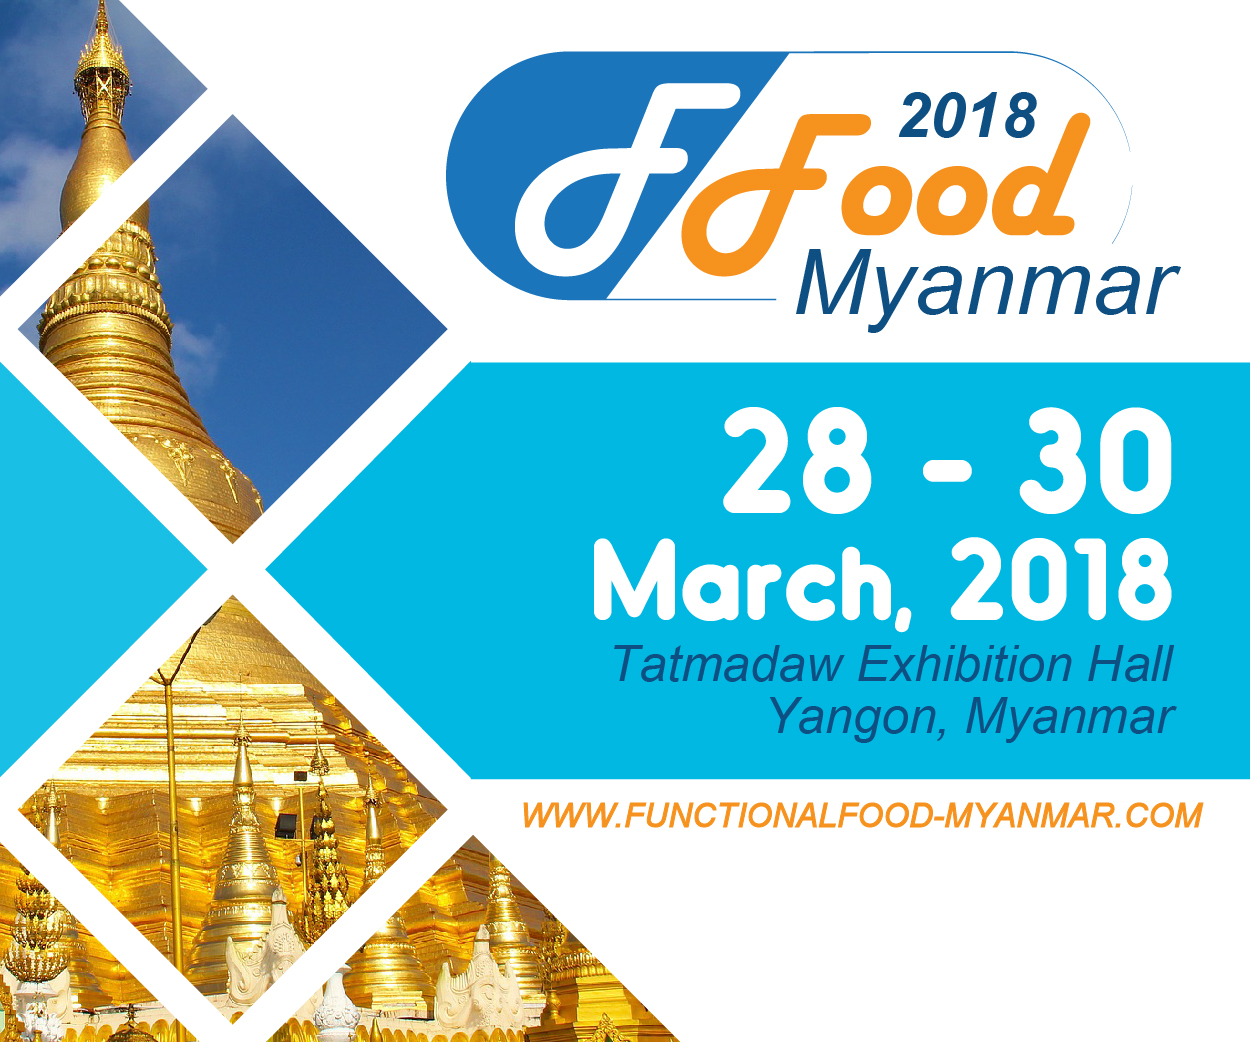 Functional Food Expo Myanmar 2018 - Business1 com